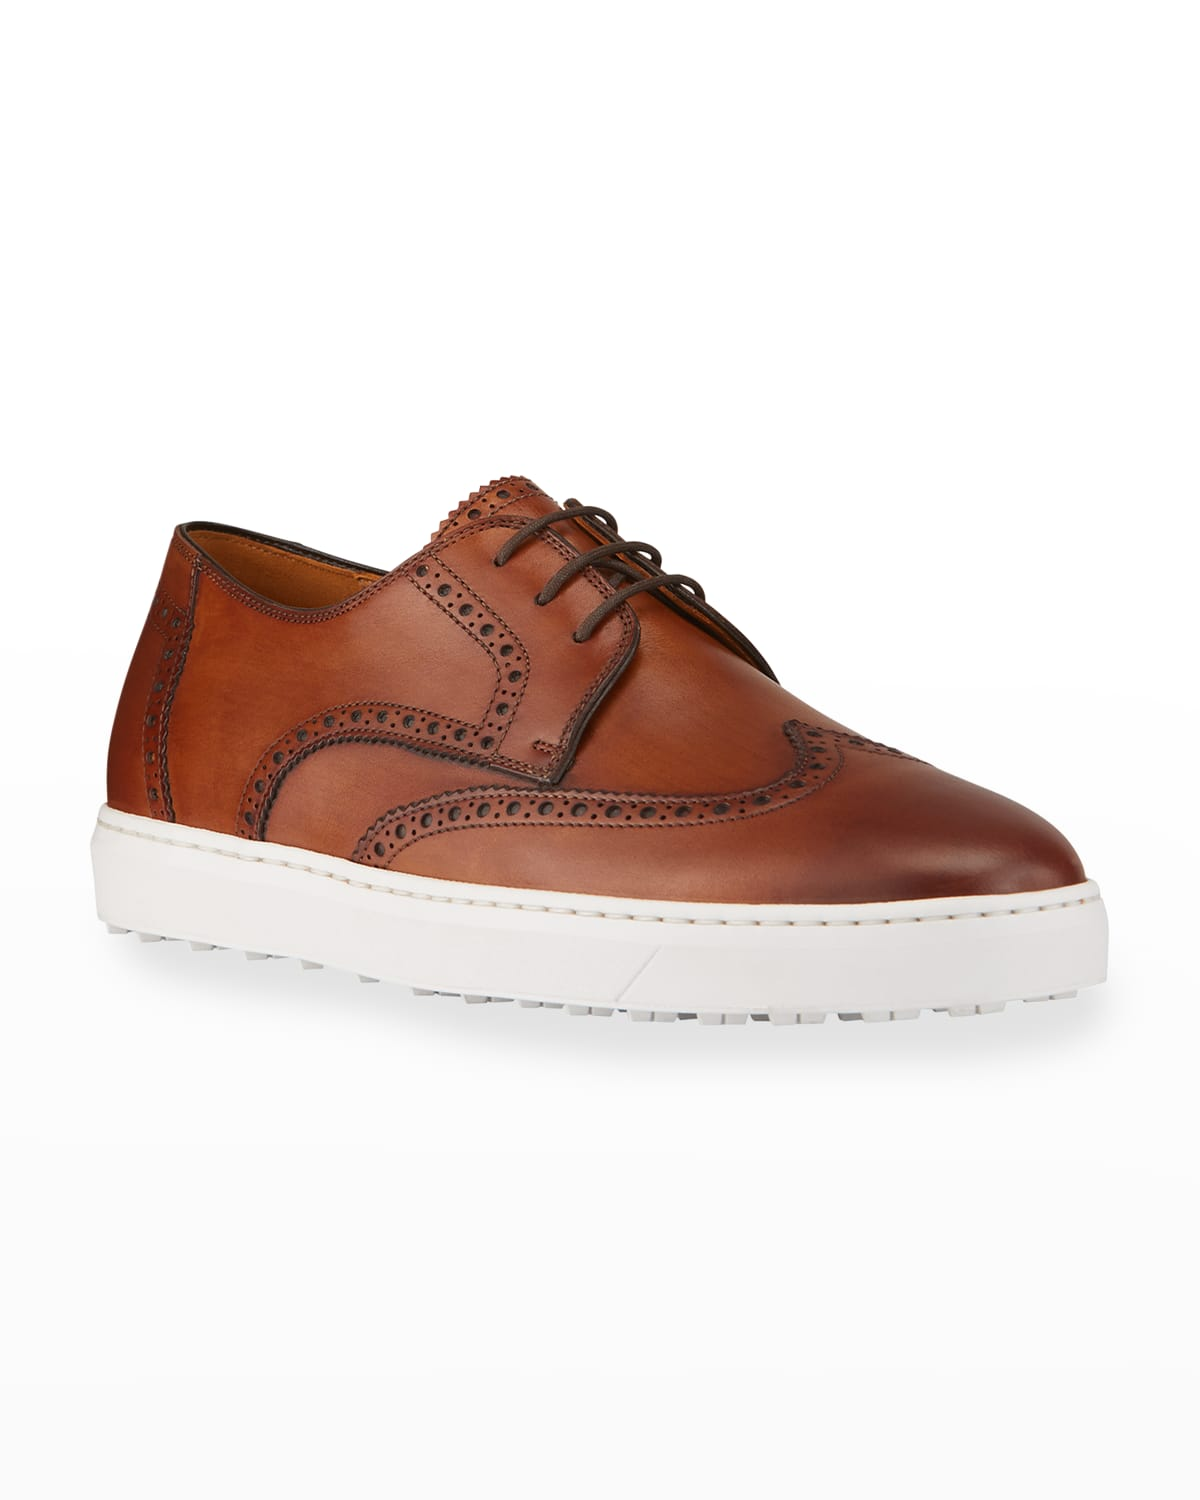 Men's Leather Wing-Tip Low-Top Sneakers